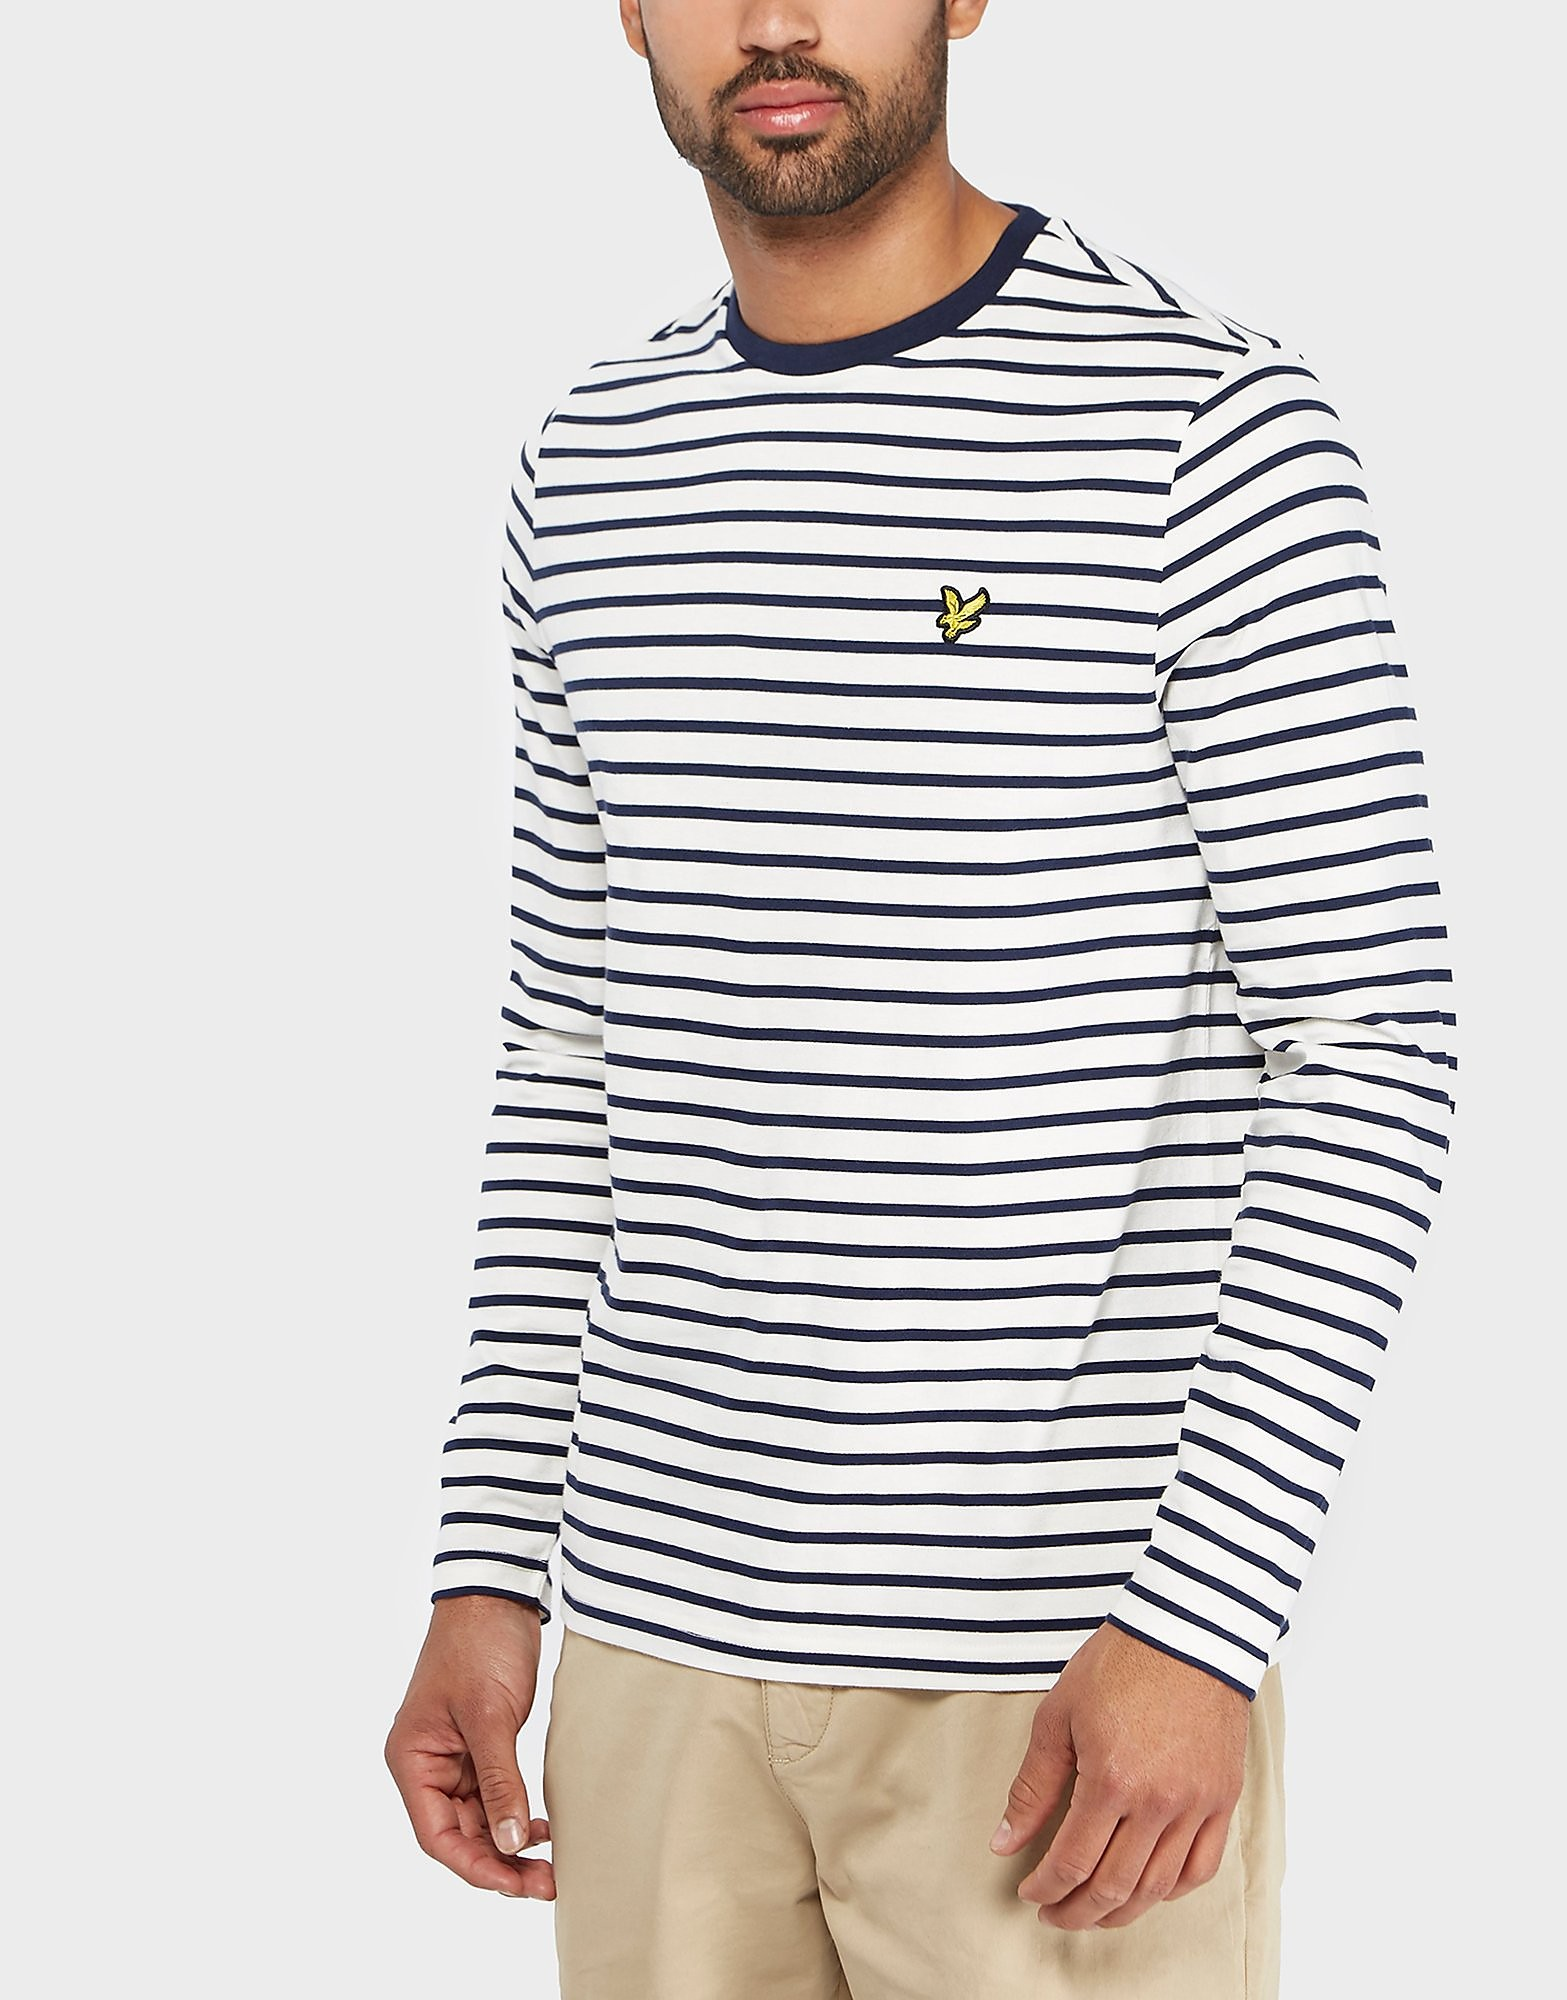 Lyle & Scott Brenton Stripe Long Sleeve T-Shirt